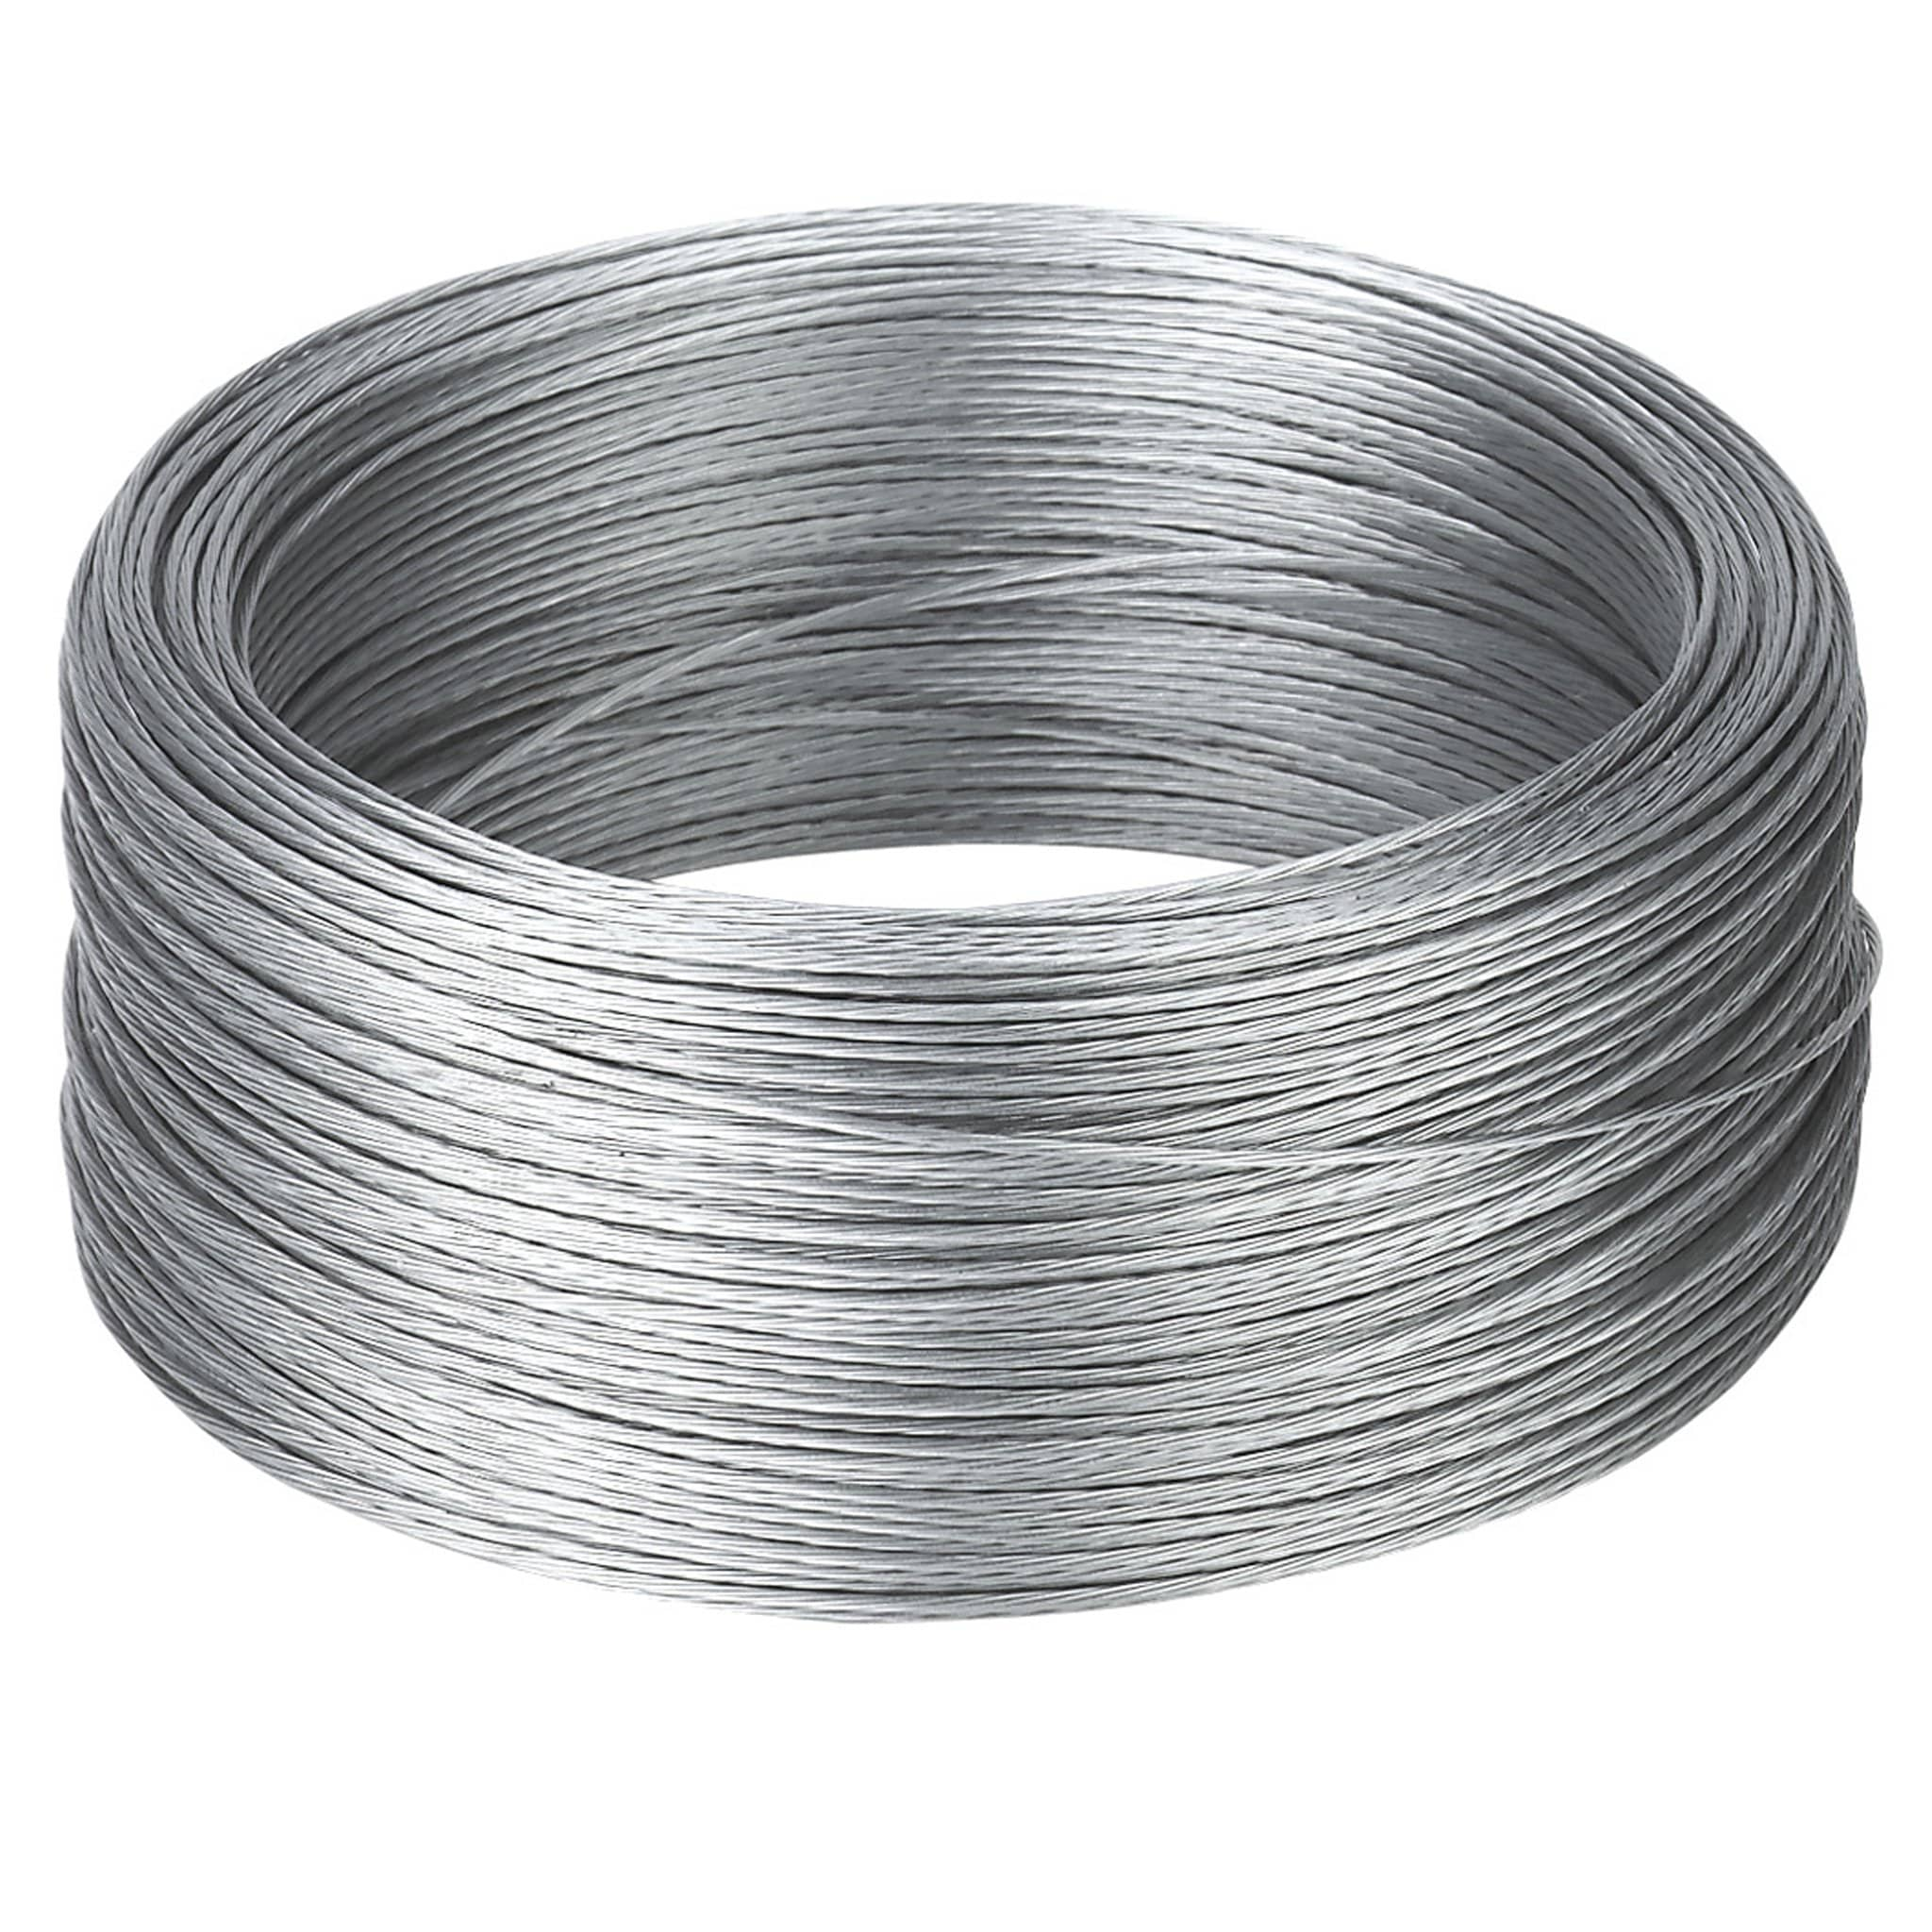 Corral Galvanised Stranded Wire CRL0580